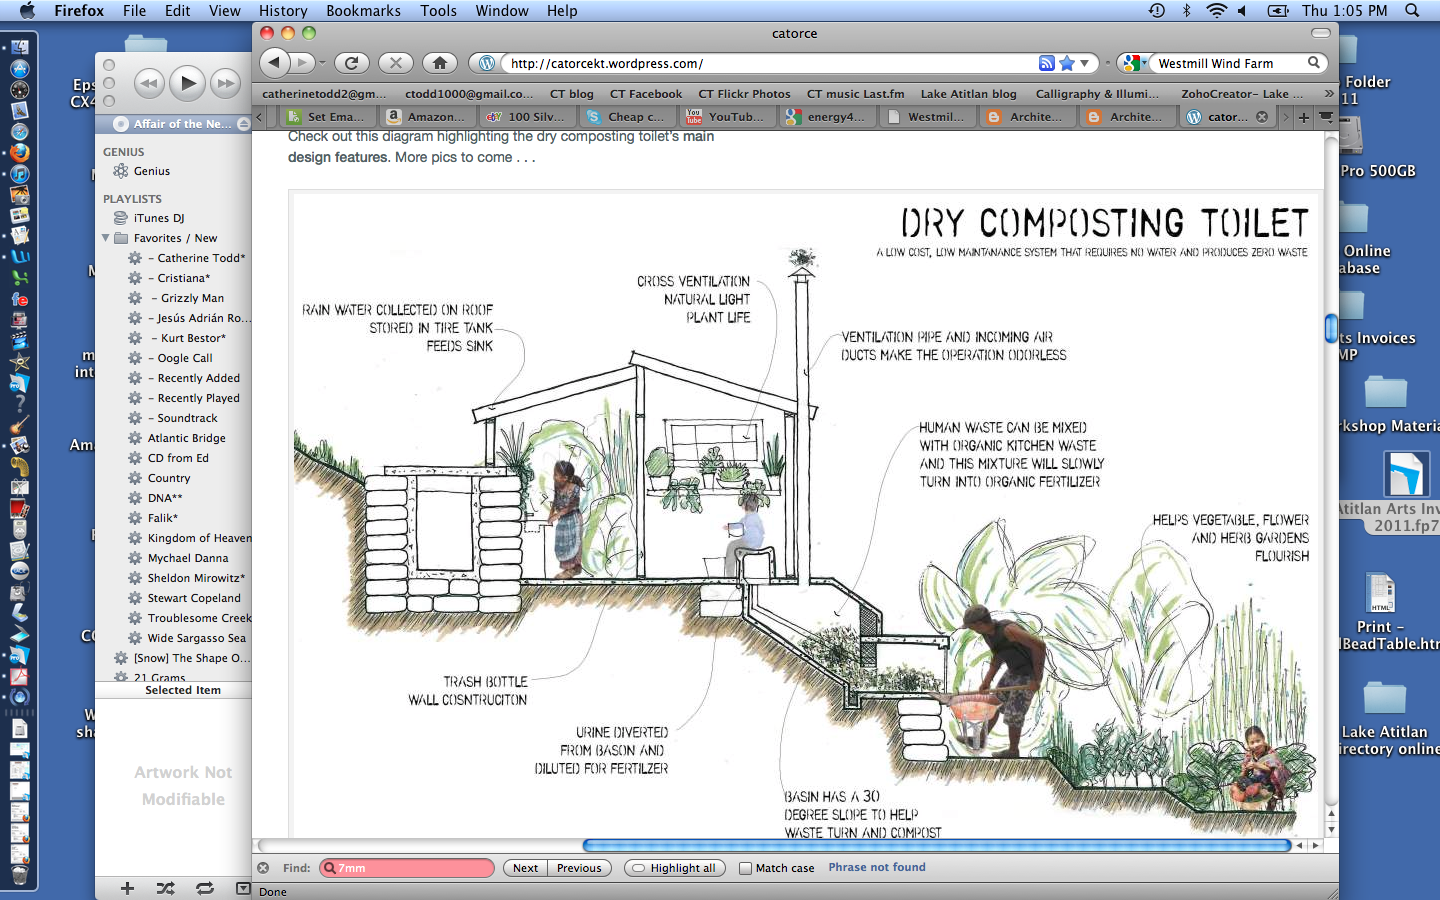 Dry Composting Toilet Diagram how to clean septic tank diagram